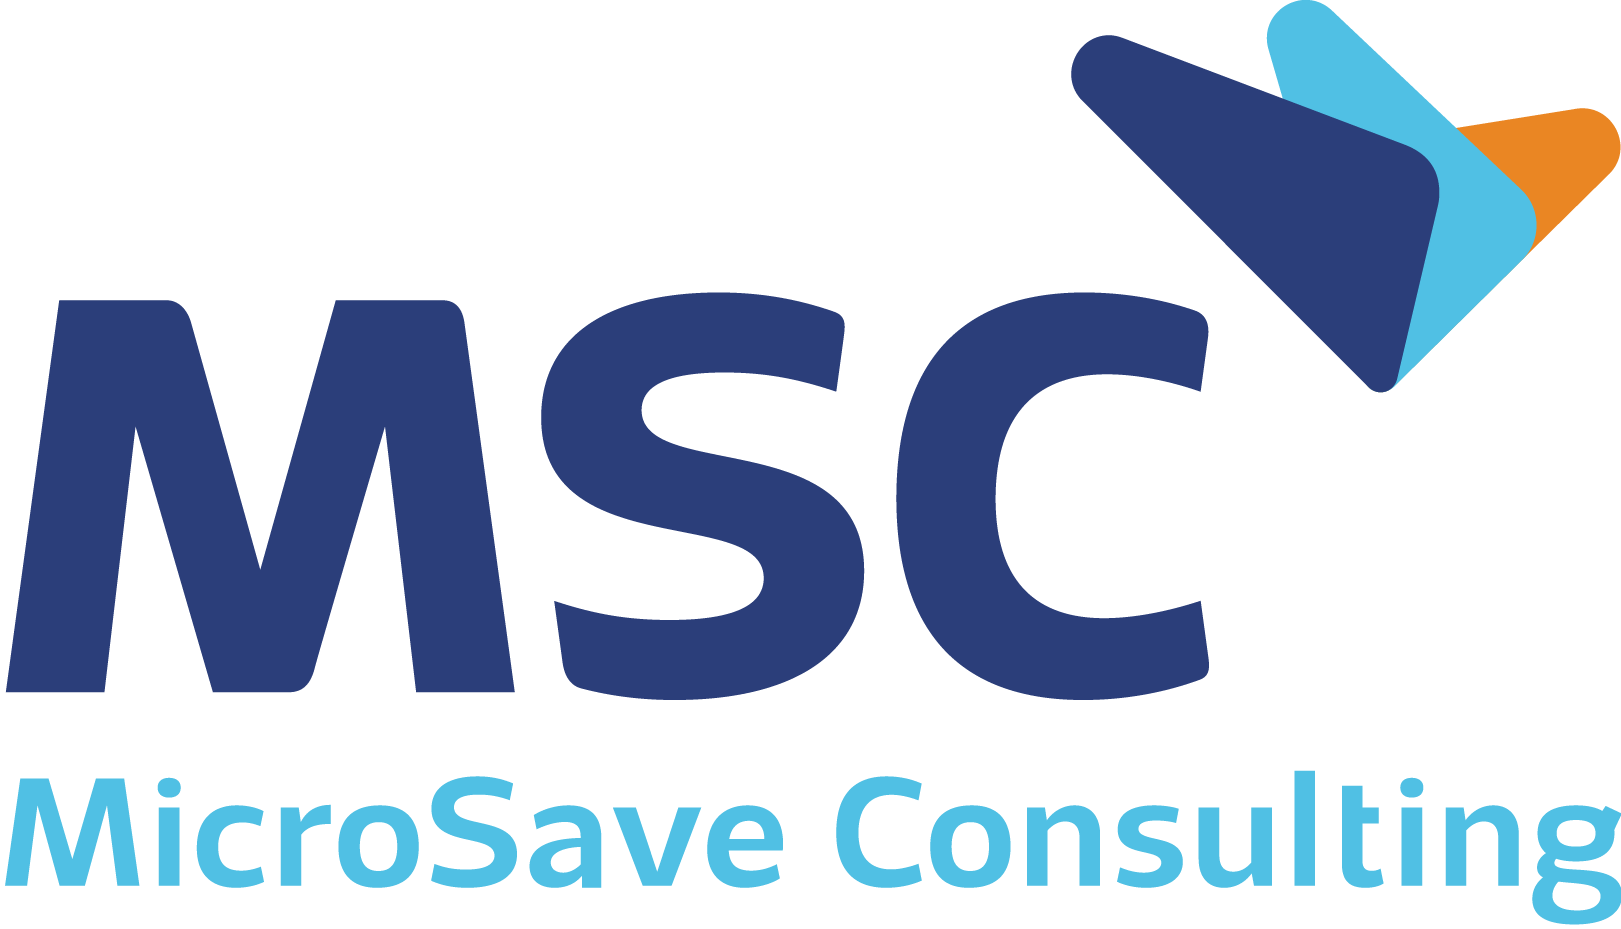 Microsave - Market-led solutions for financial services